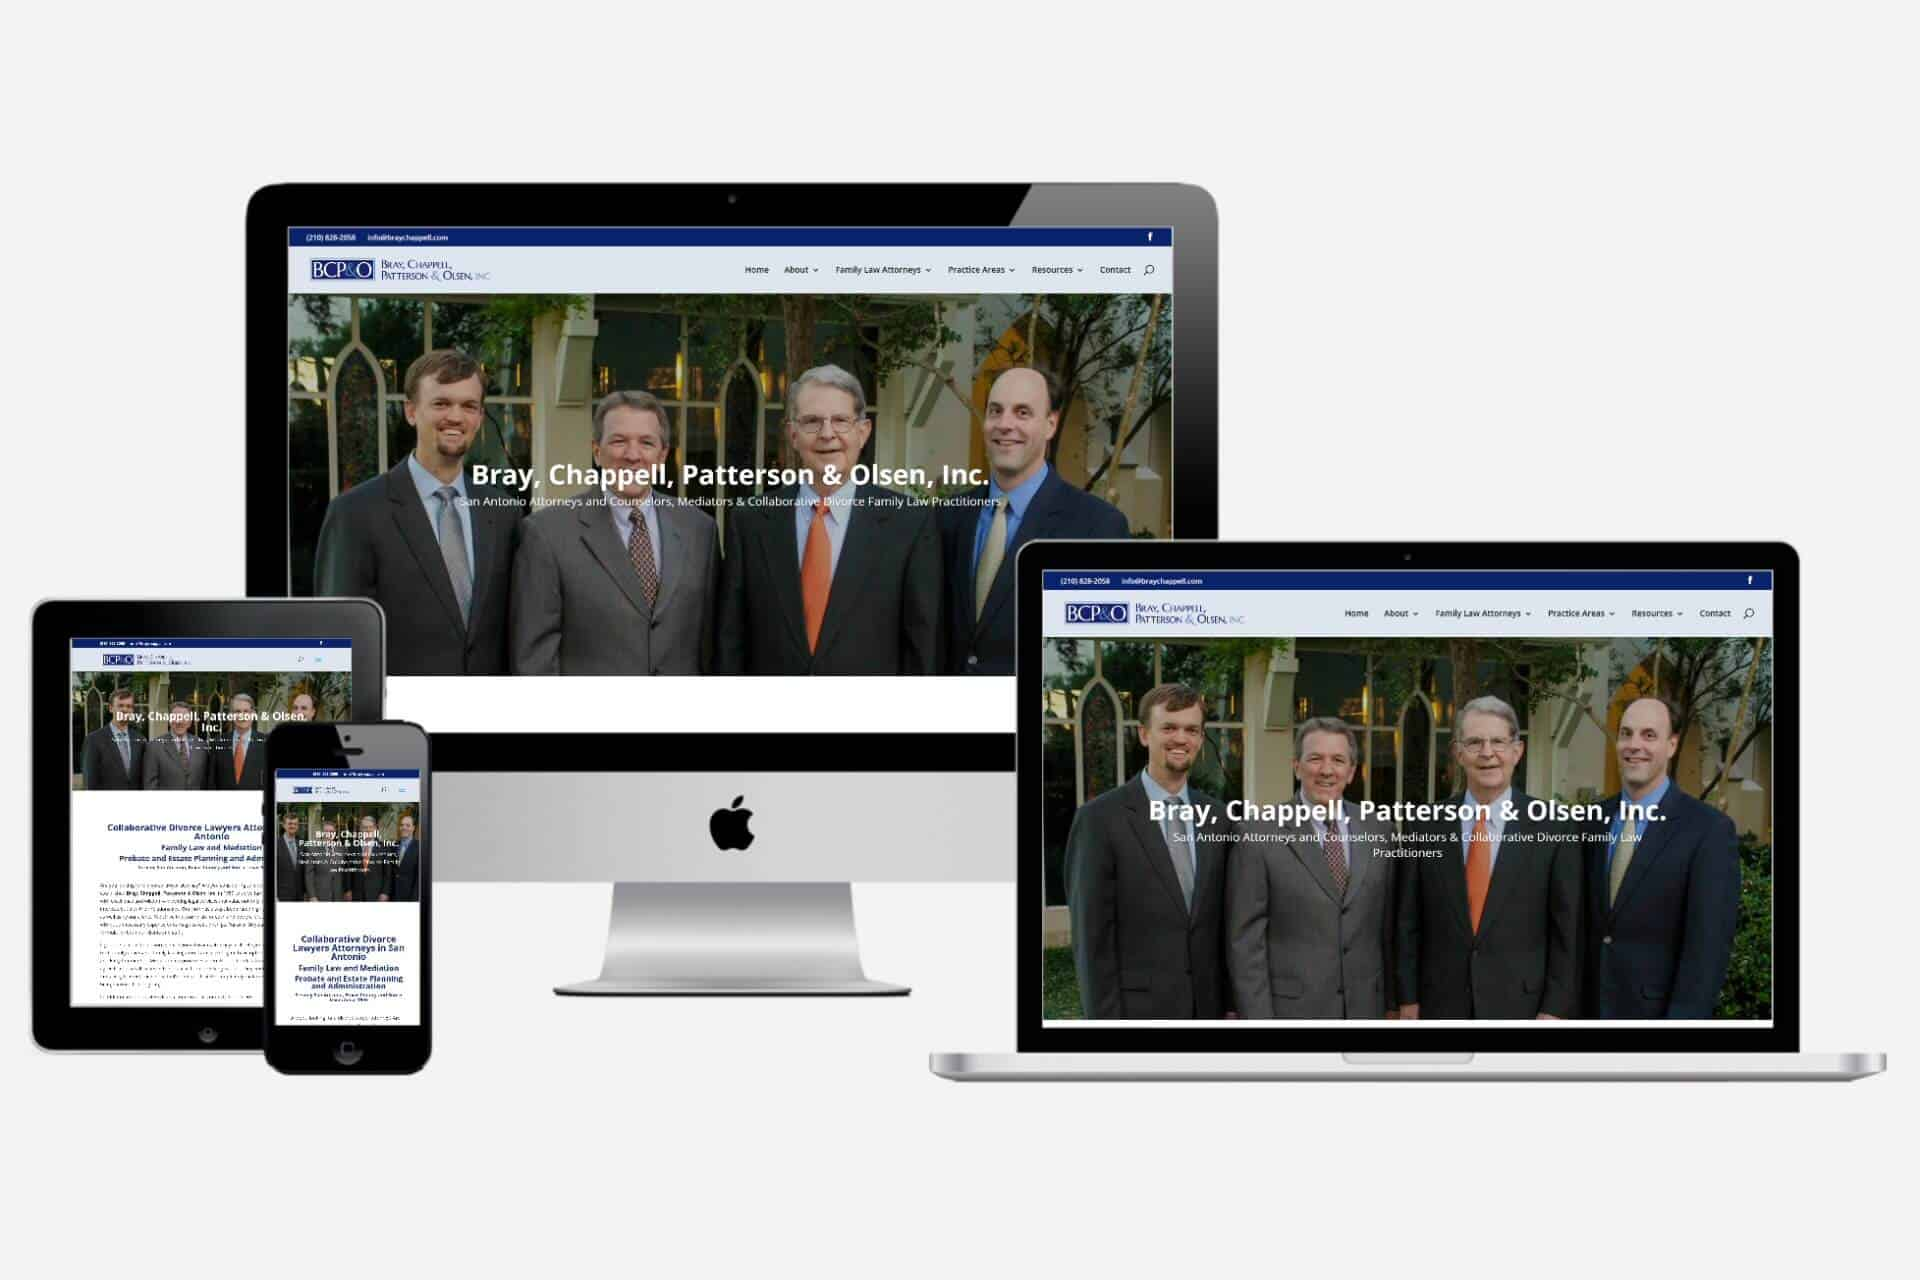 Bray, Chappell, Patterson, and Olsen Website Design by WizardsWebs Design LLC